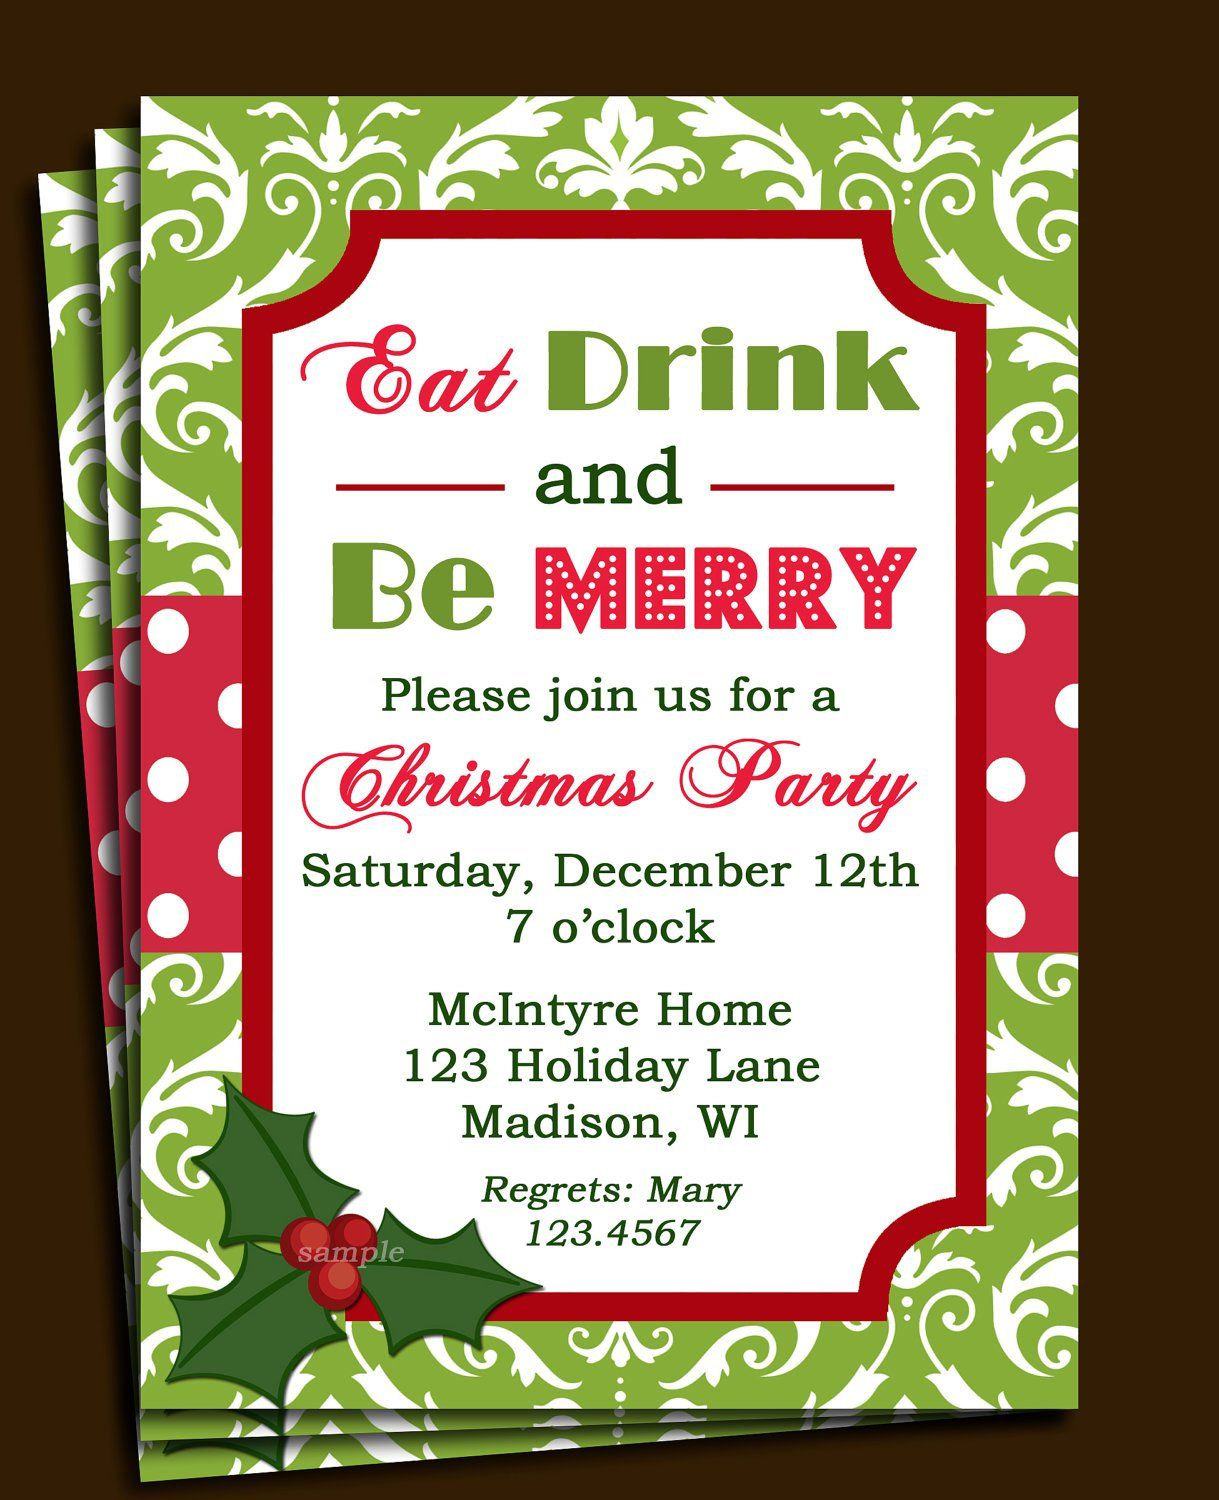 Invitation letter sample with rsvp party invitations pinterest invitation letter sample with rsvp office christmas partyxmas stopboris Choice Image